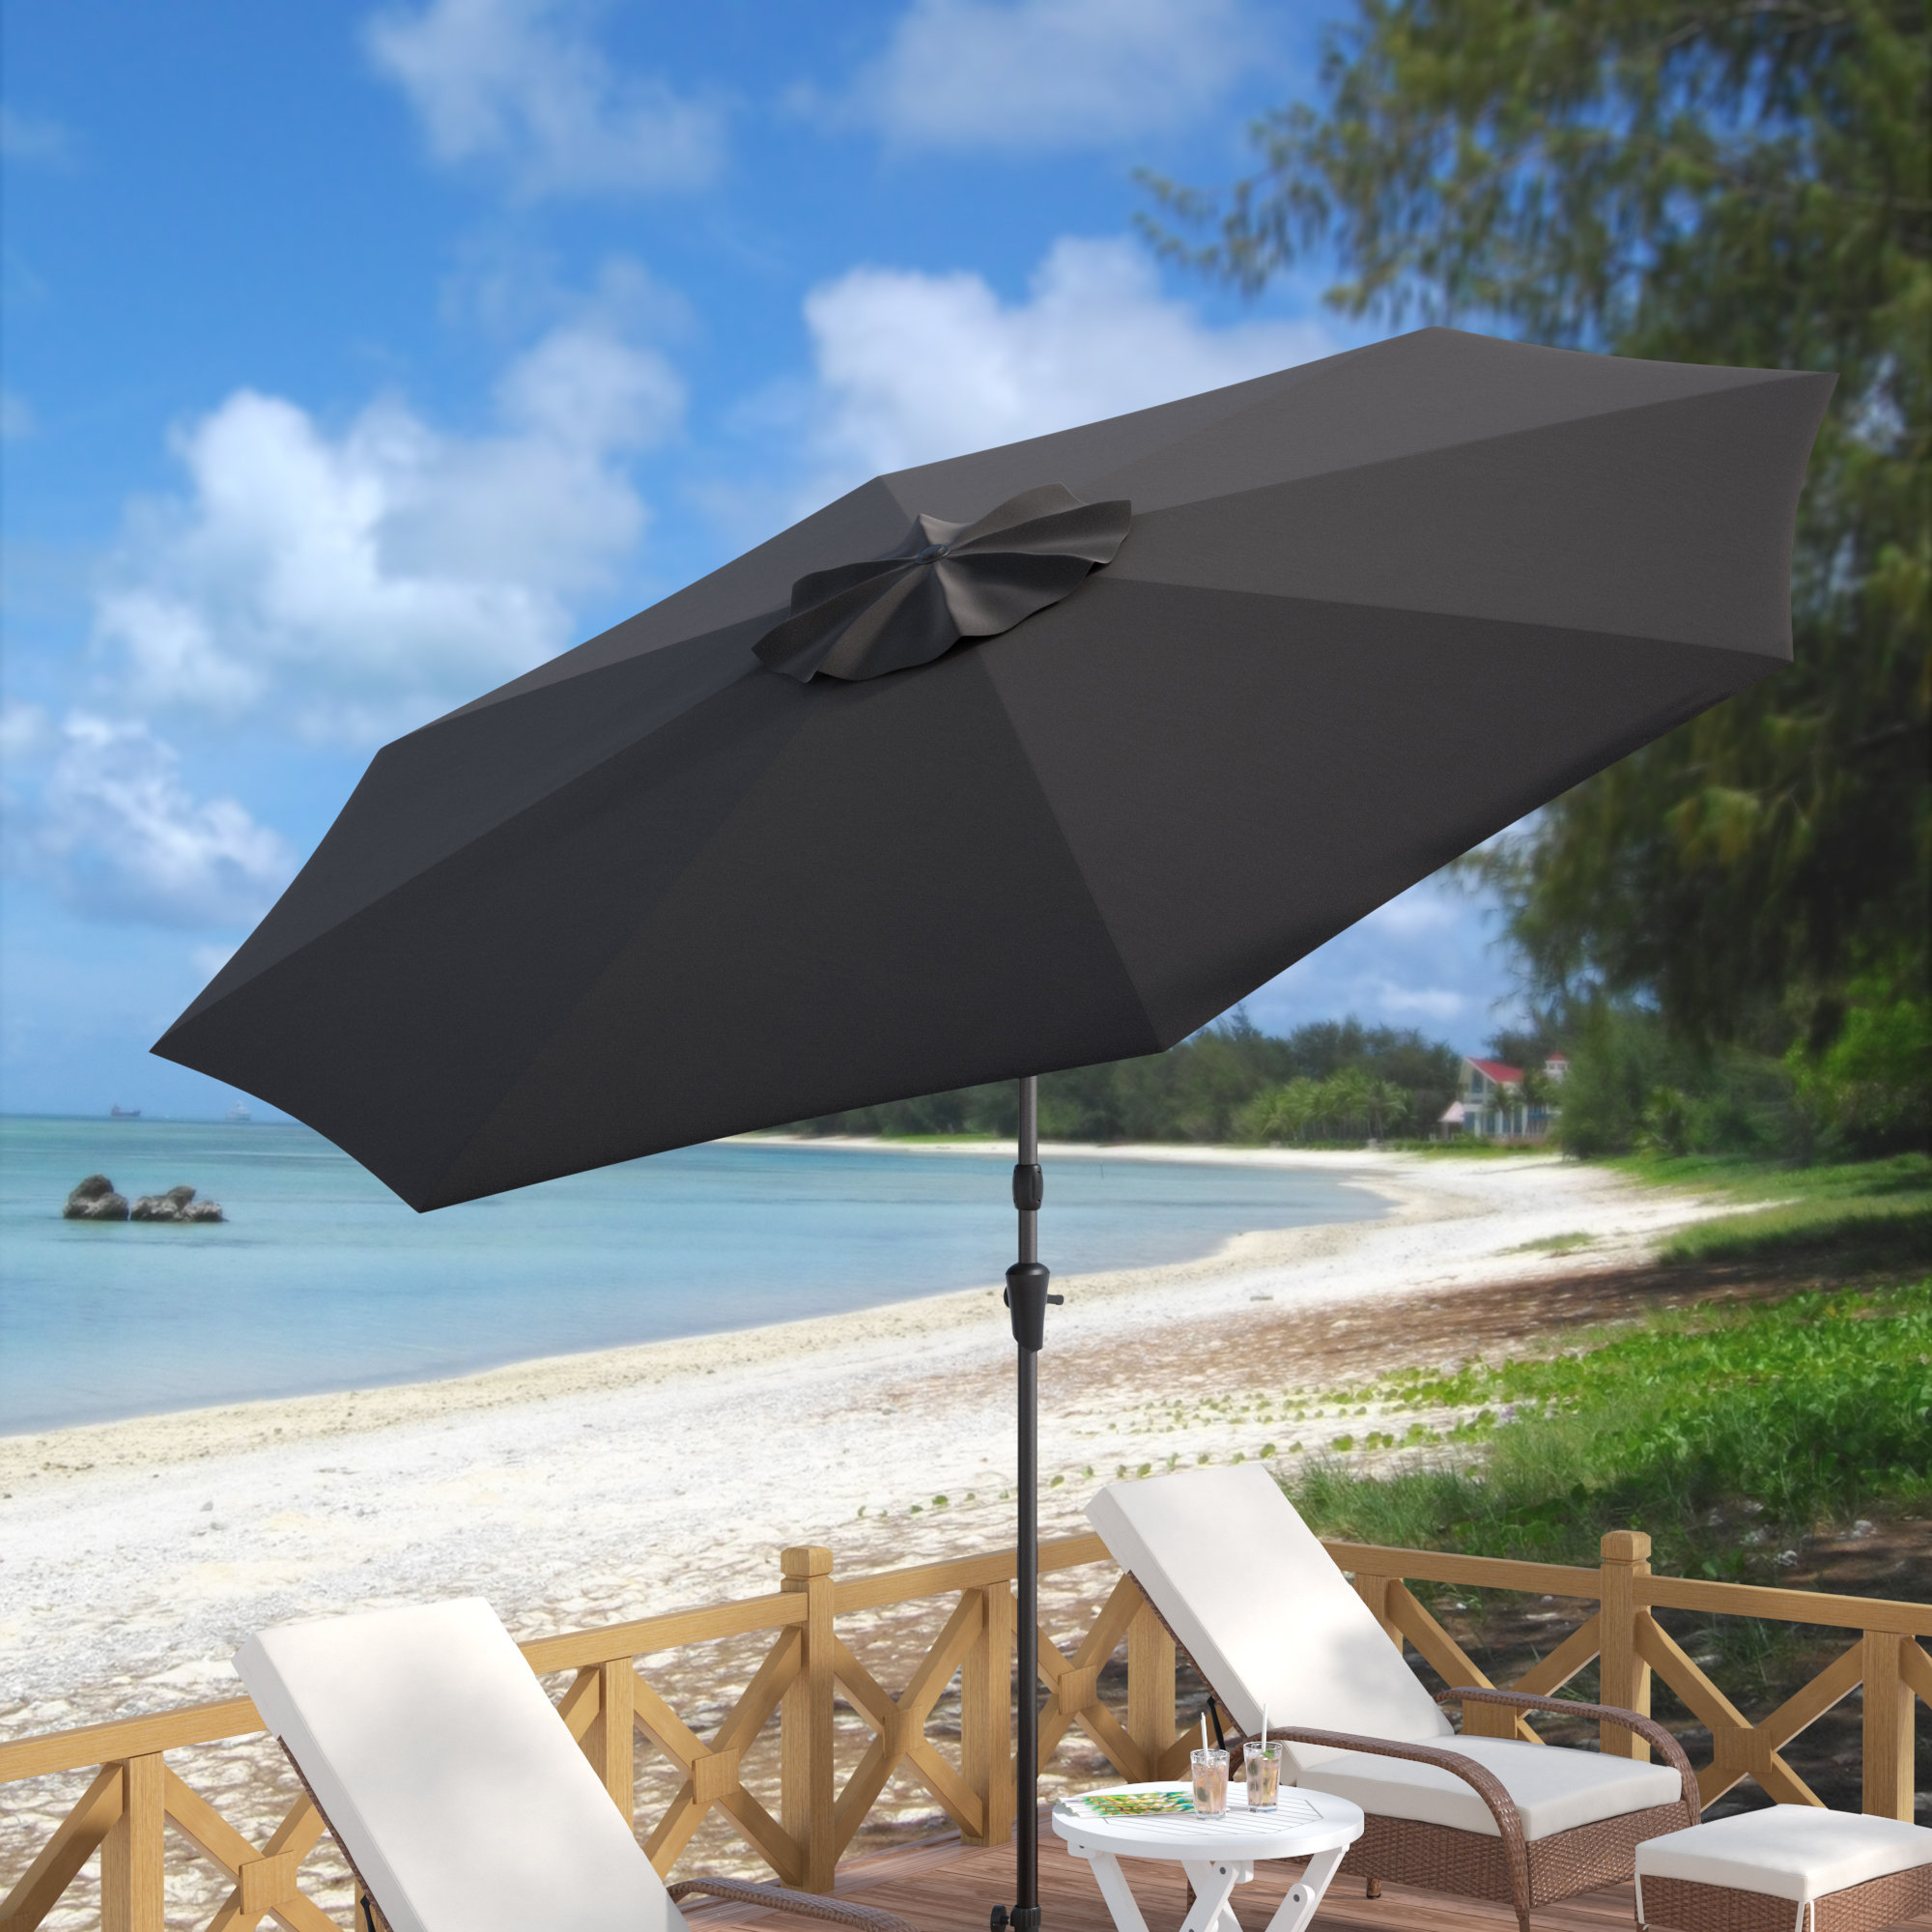 Julian Market Sunbrella Umbrellas With Regard To Fashionable Markley Market Beach Umbrella (View 15 of 20)